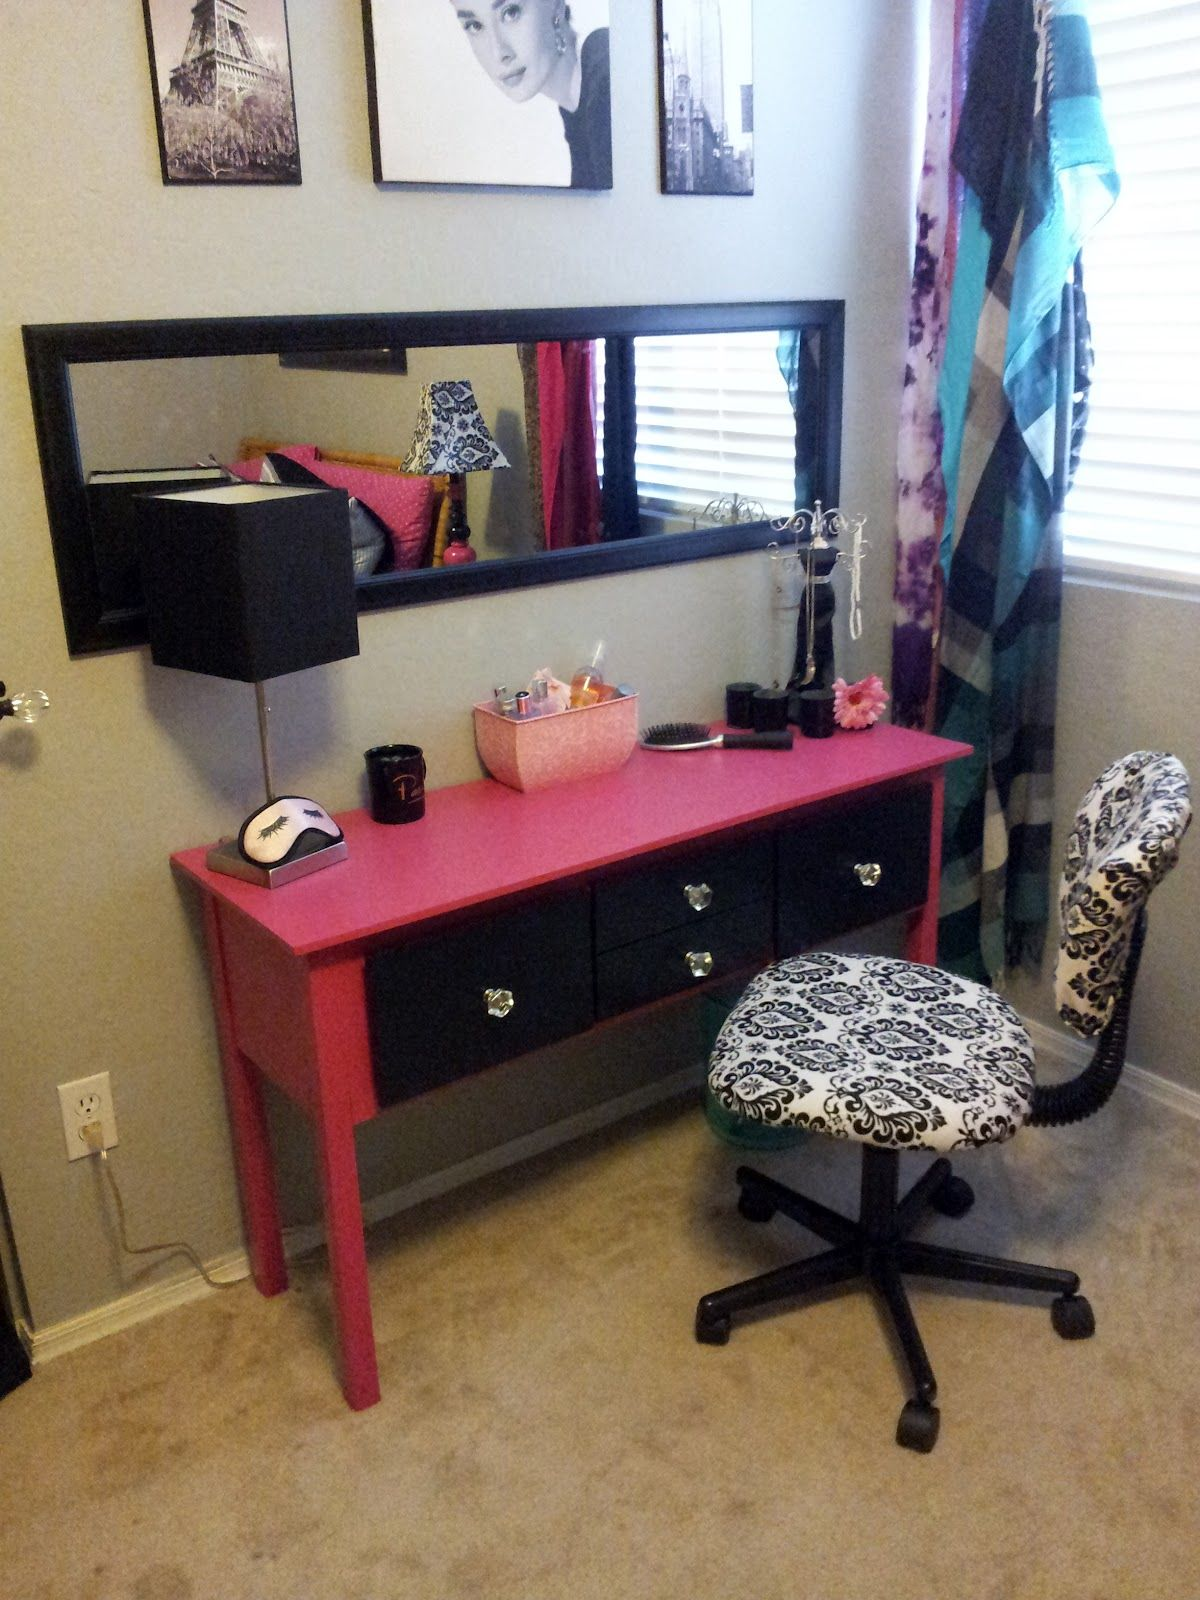 Cheap Makeup Chairs 17 Diy Vanity Mirror Ideas To Make Your Room More